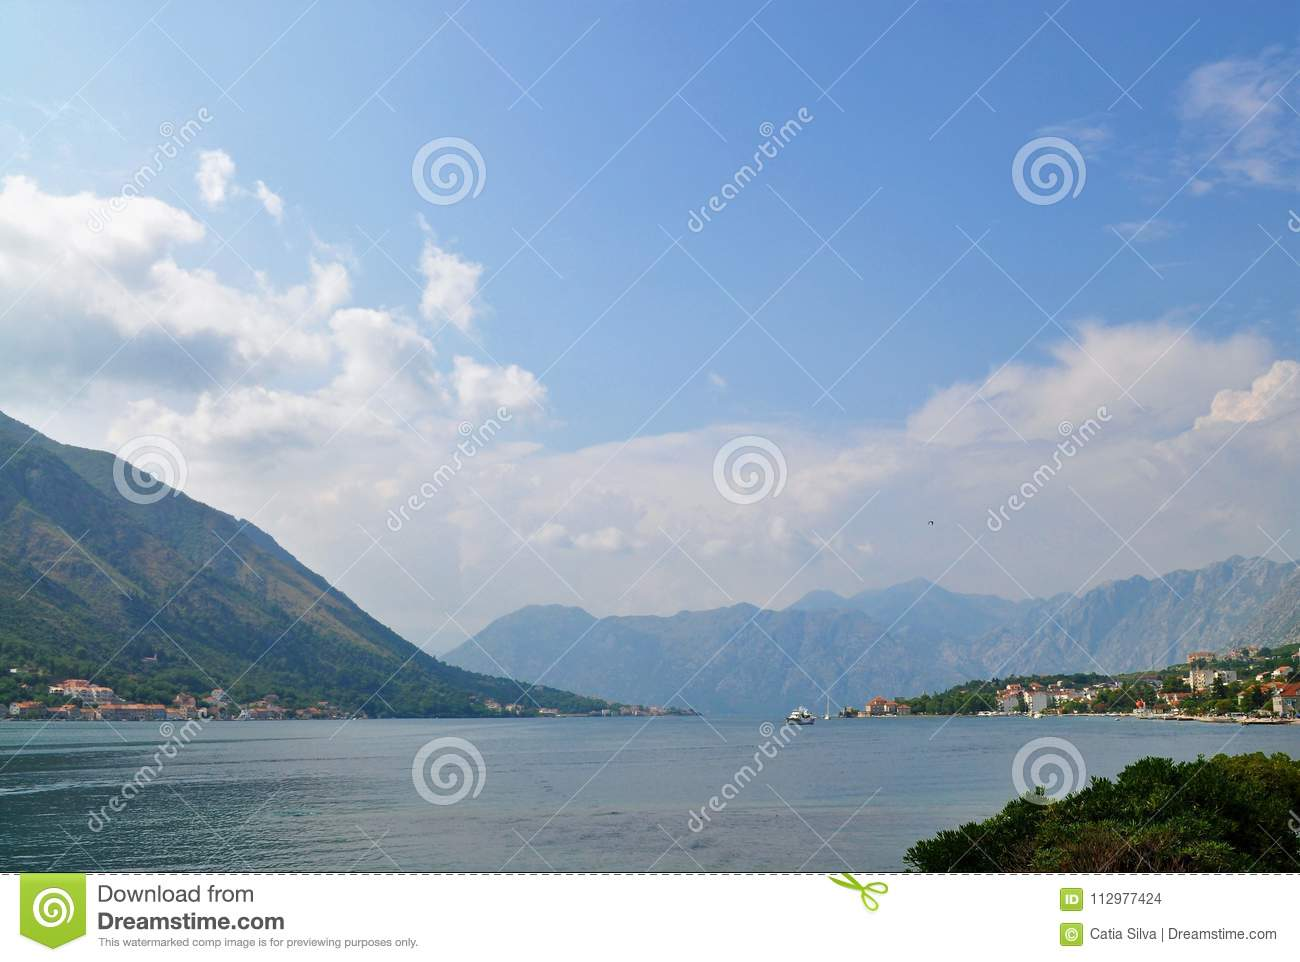 Europe's most southernmost fjord - Kotor Bay